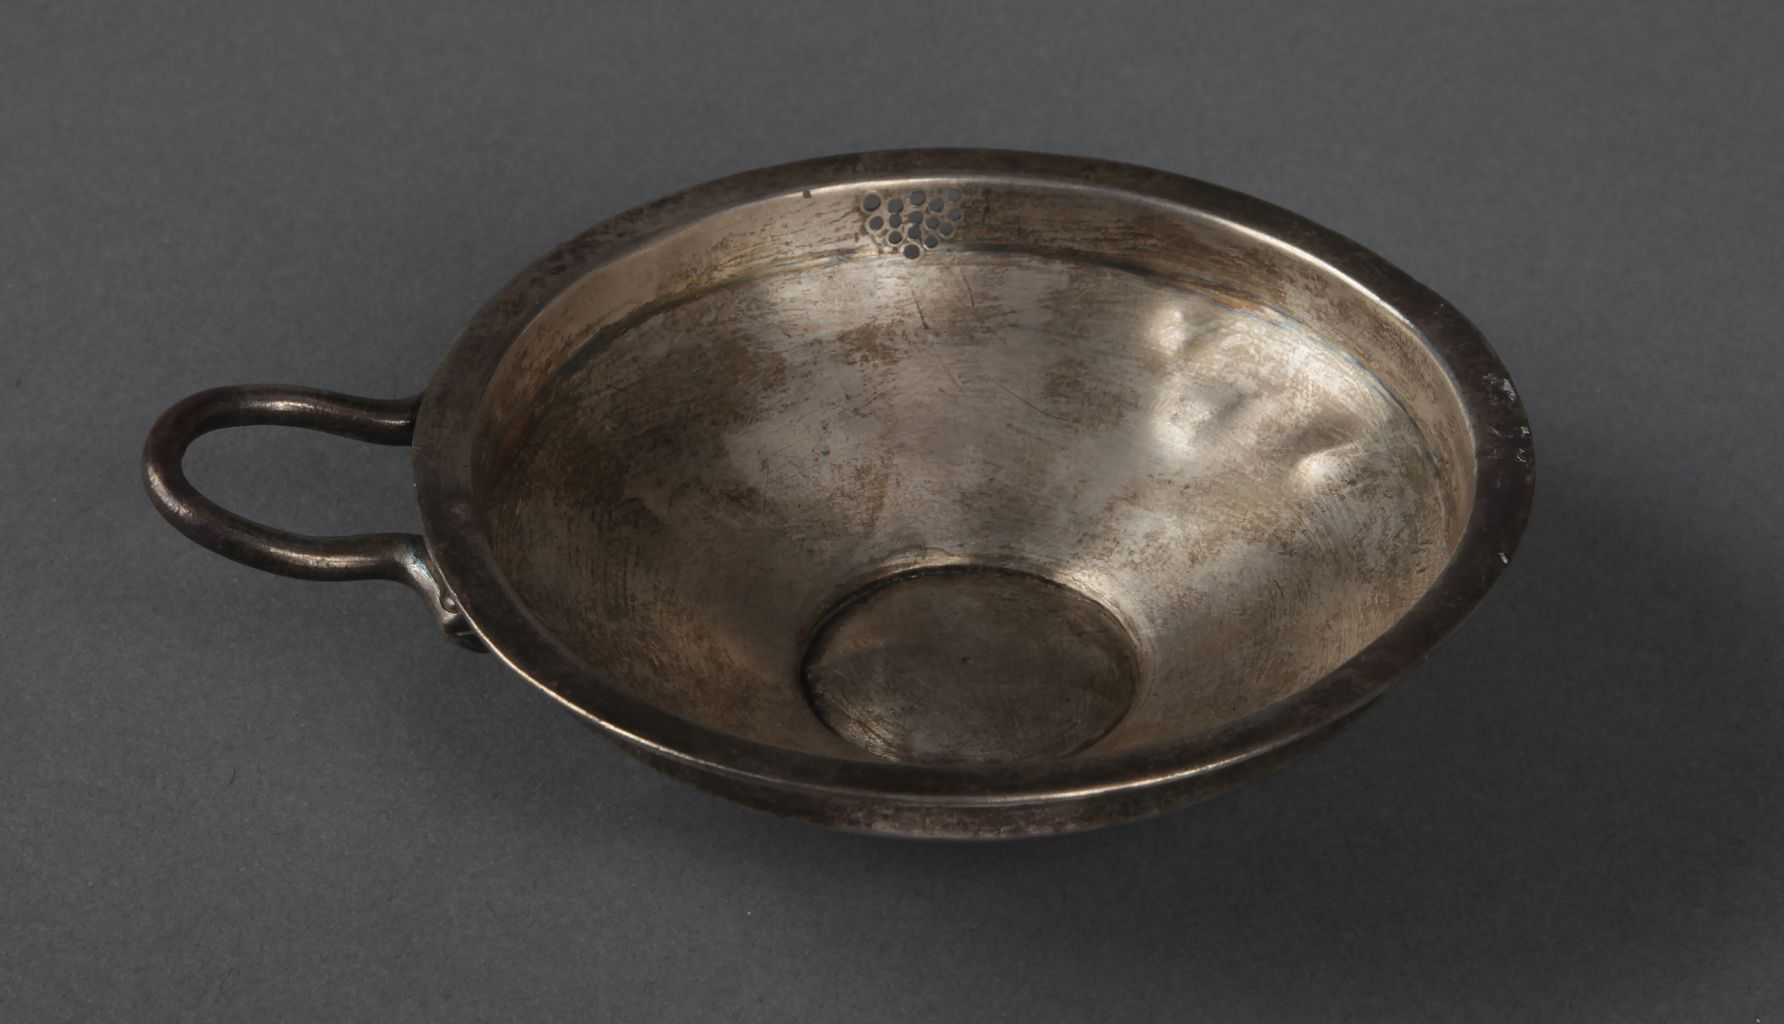 Silver side-spouted dish with Phrygian inscription